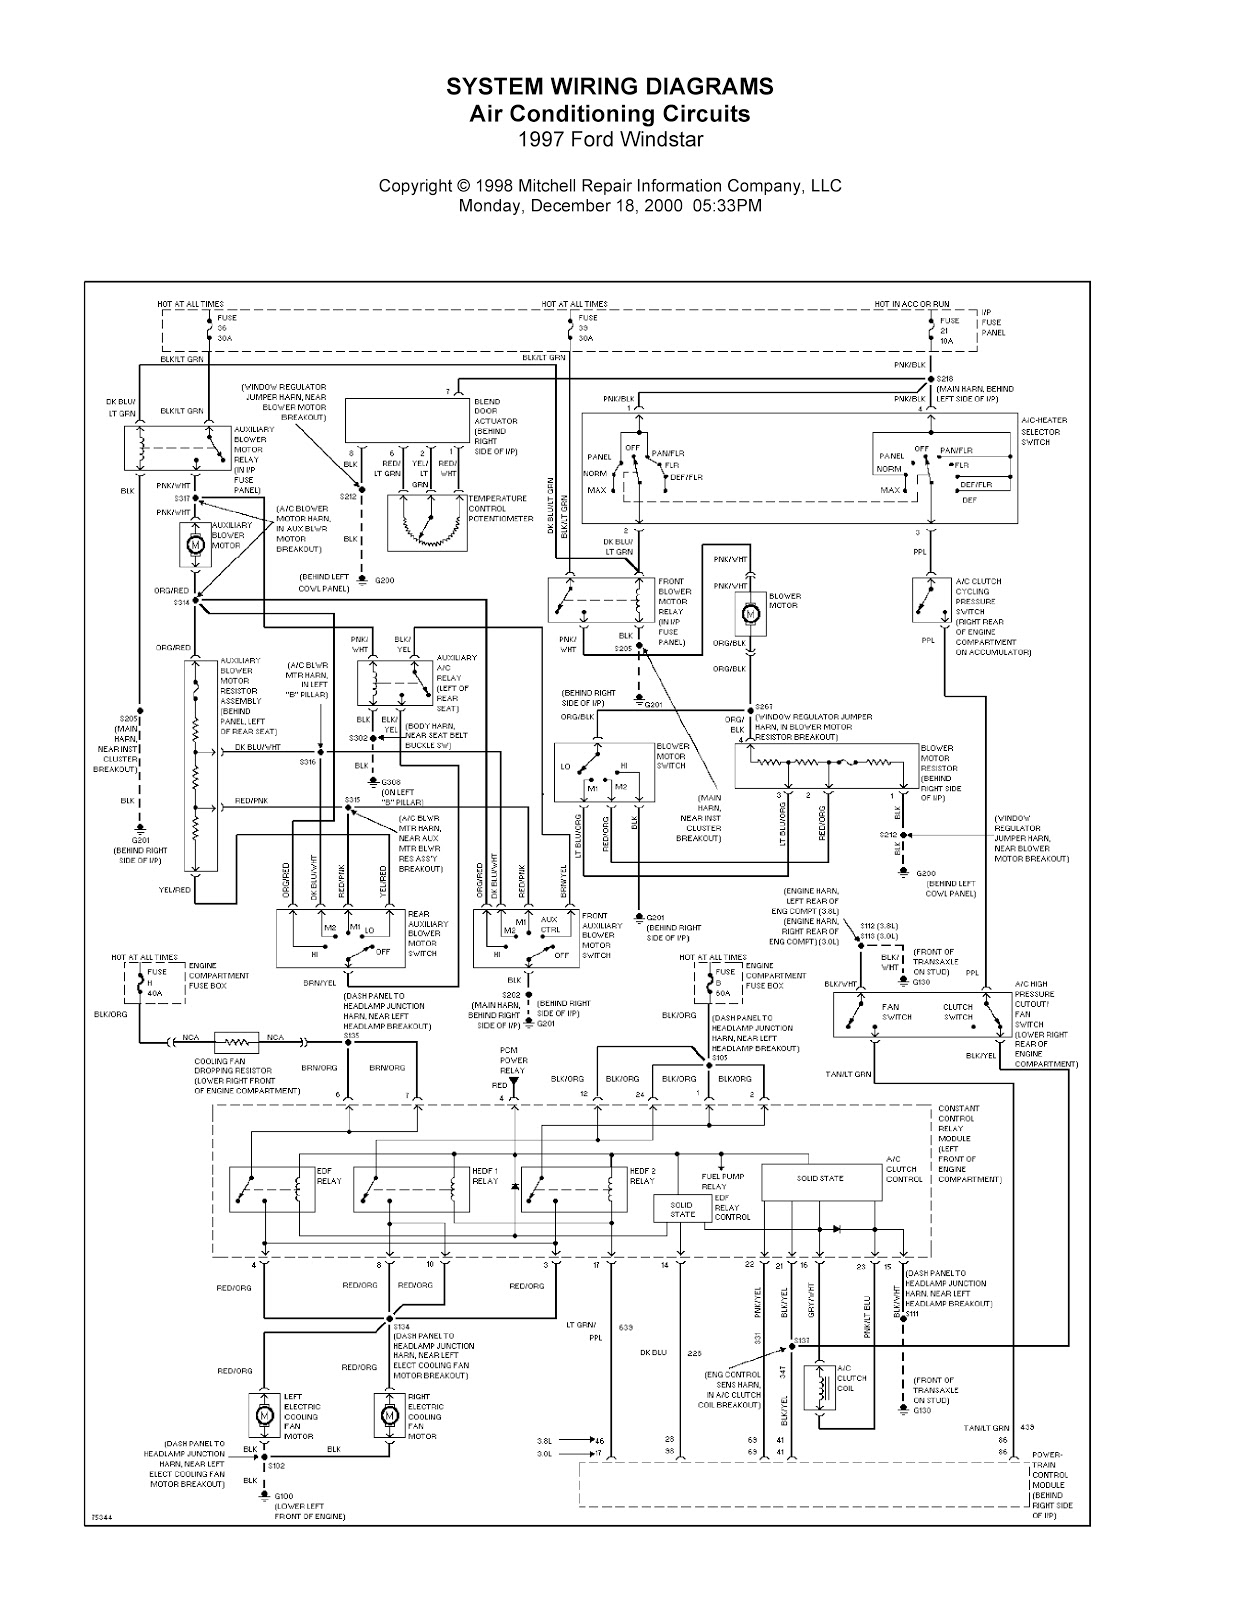 0001 2000 ford windstar wiring diagram ford windstar 3 8 engine diagram  at n-0.co